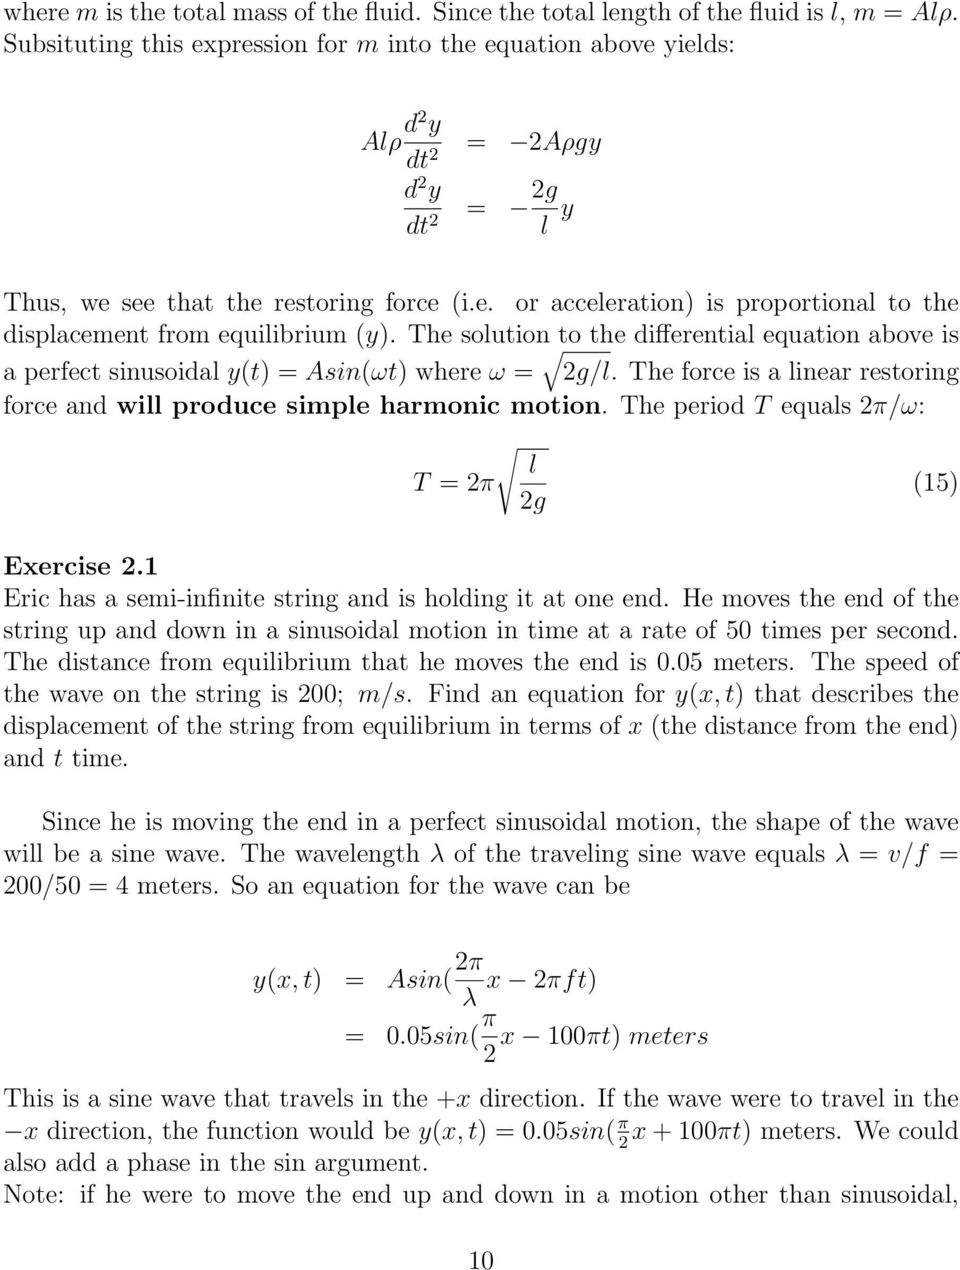 Exercises on Oscillations and Waves - PDF